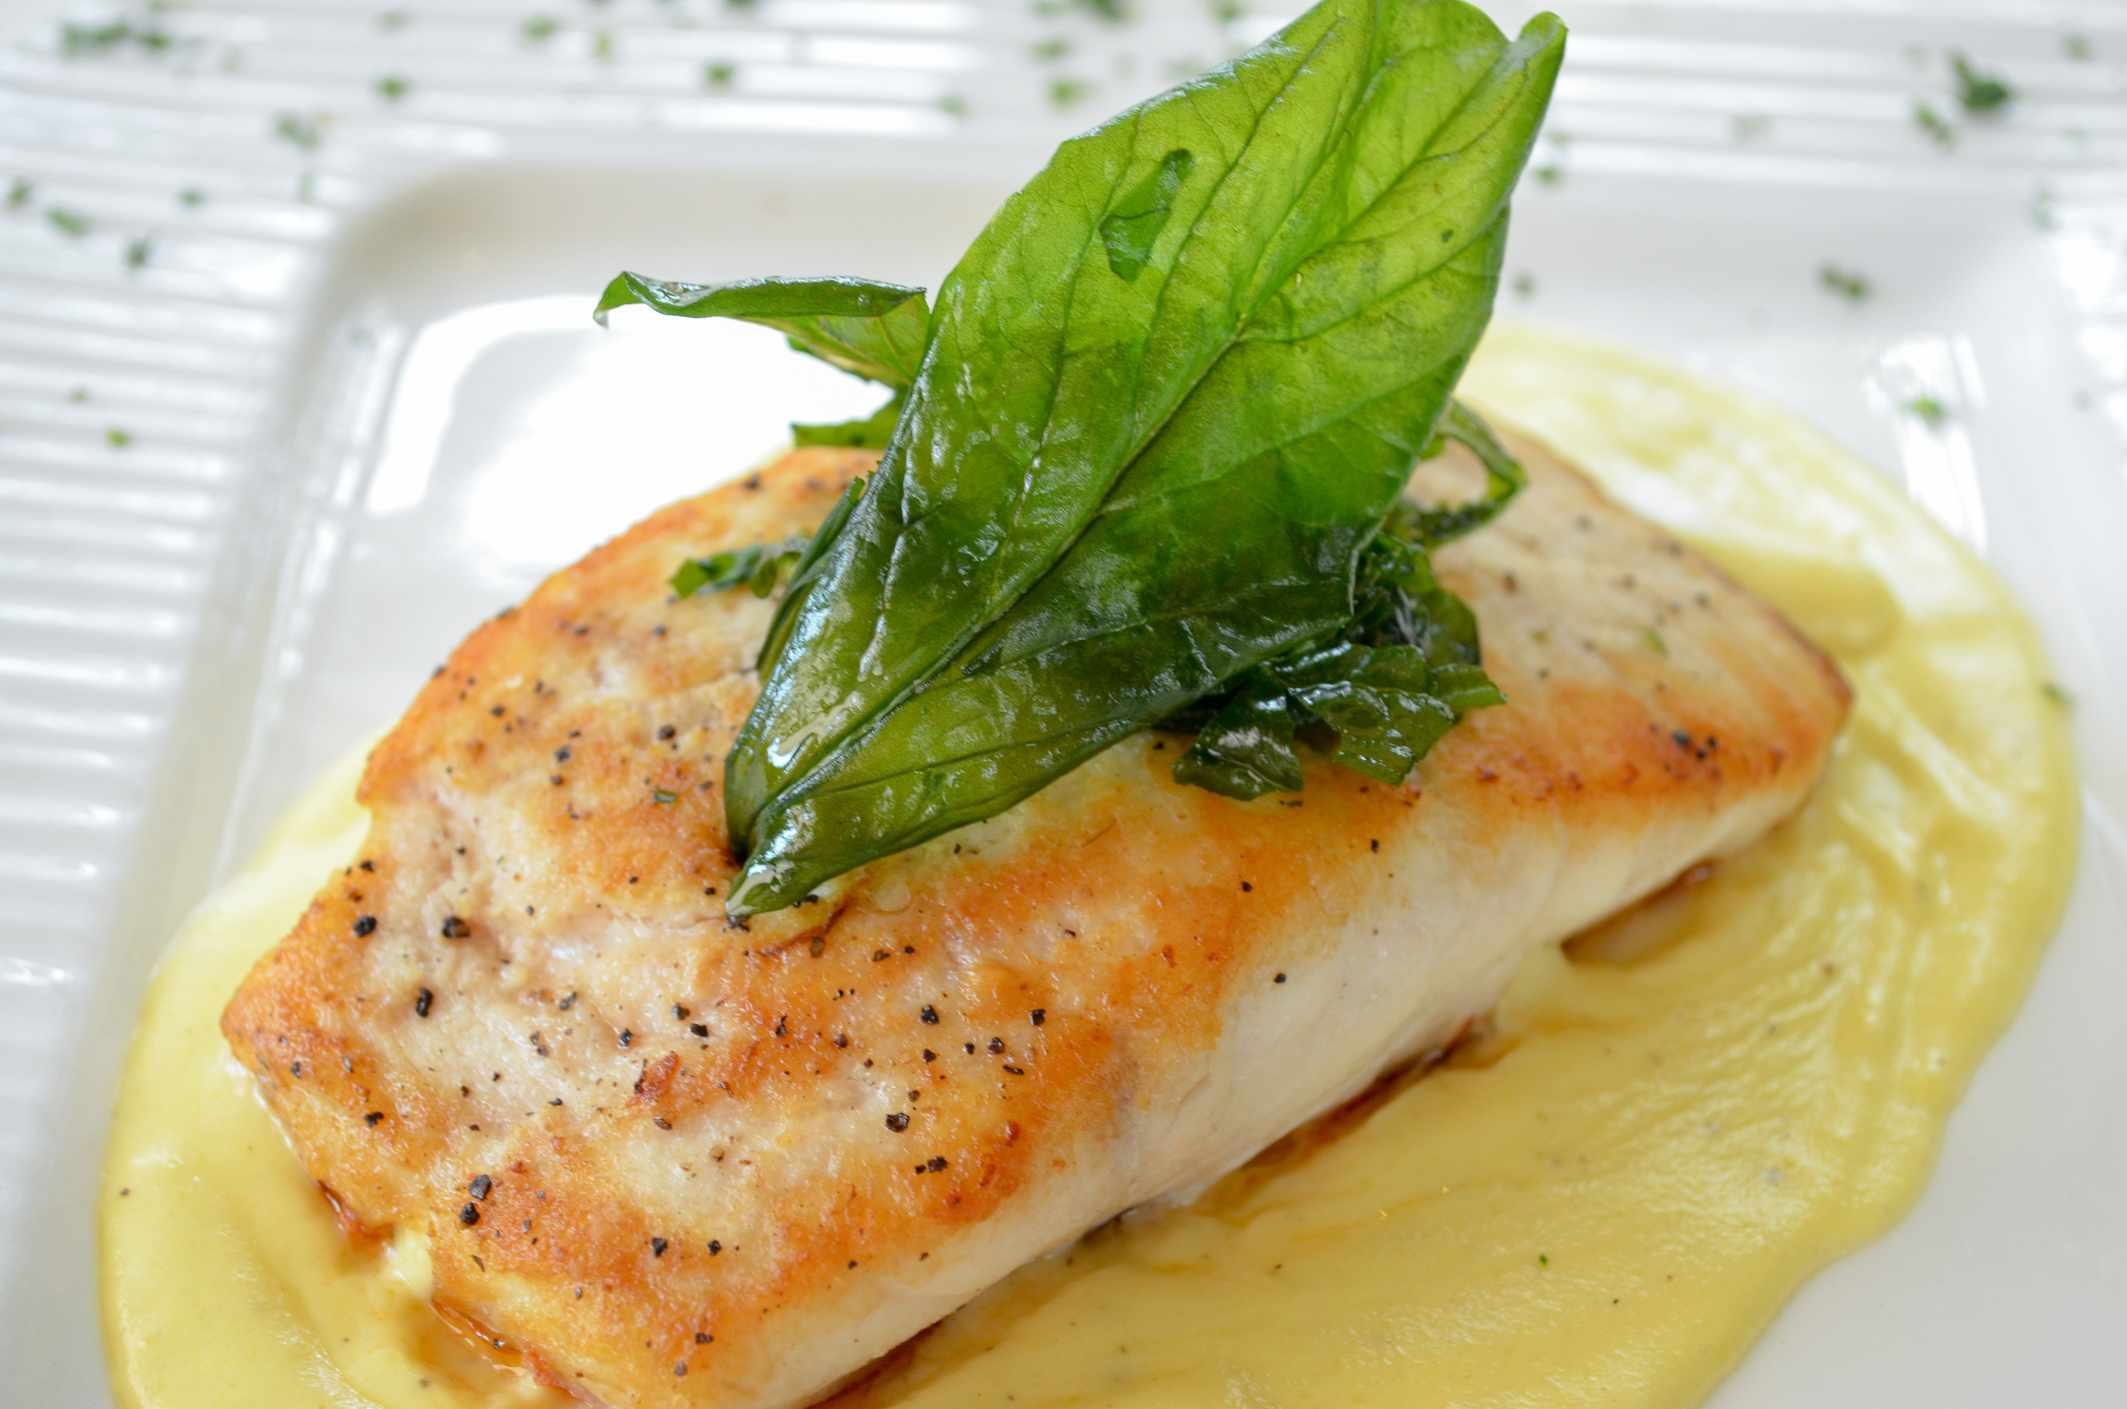 Red Snapper on a yellow sauce garnished with green leaves